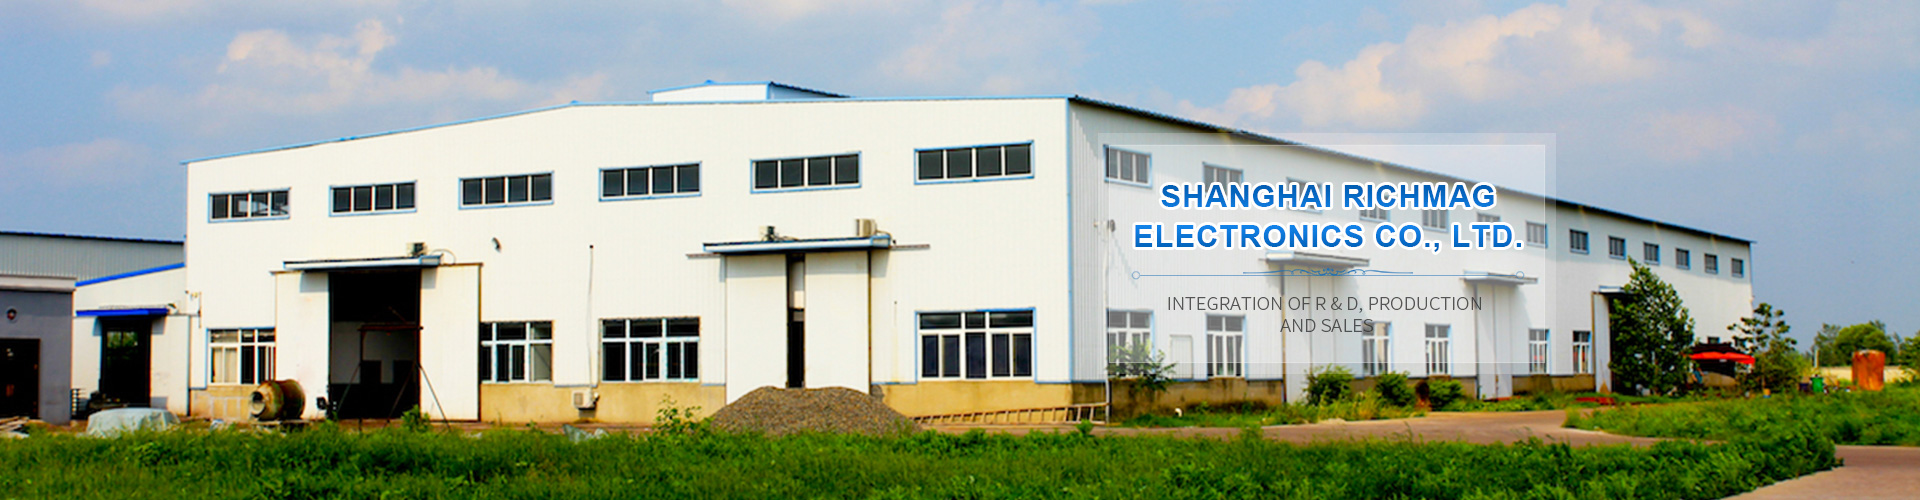 Shanghai Richmag Electronics Co., Ltd.